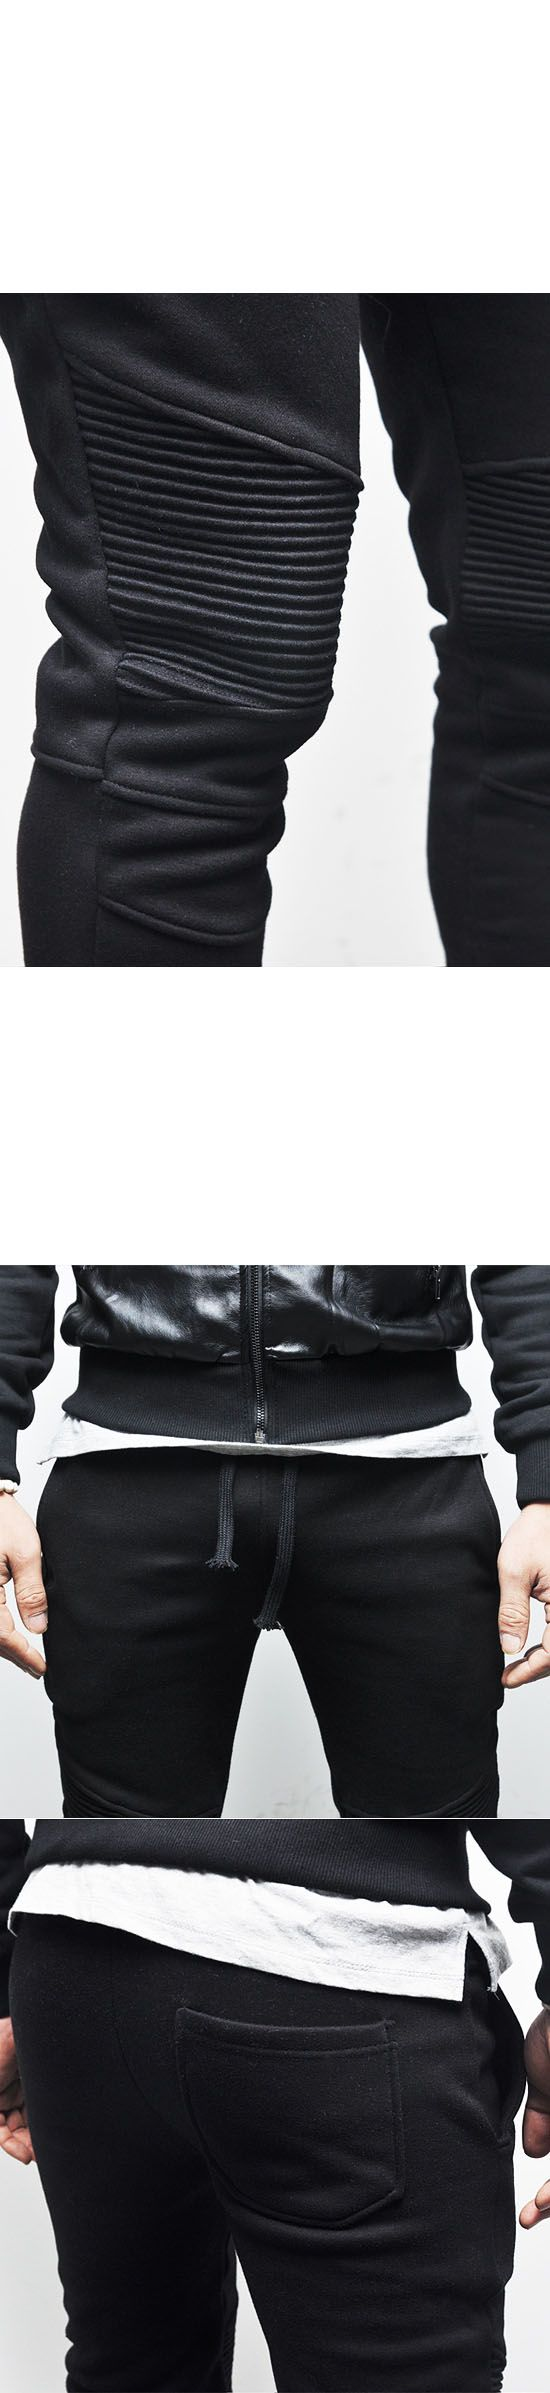 Bottoms :: 3col) Designer Homme Seaming Slim Biker-Sweatpants 87 - Mens Fashion Clothing For An Attractive Guy Look